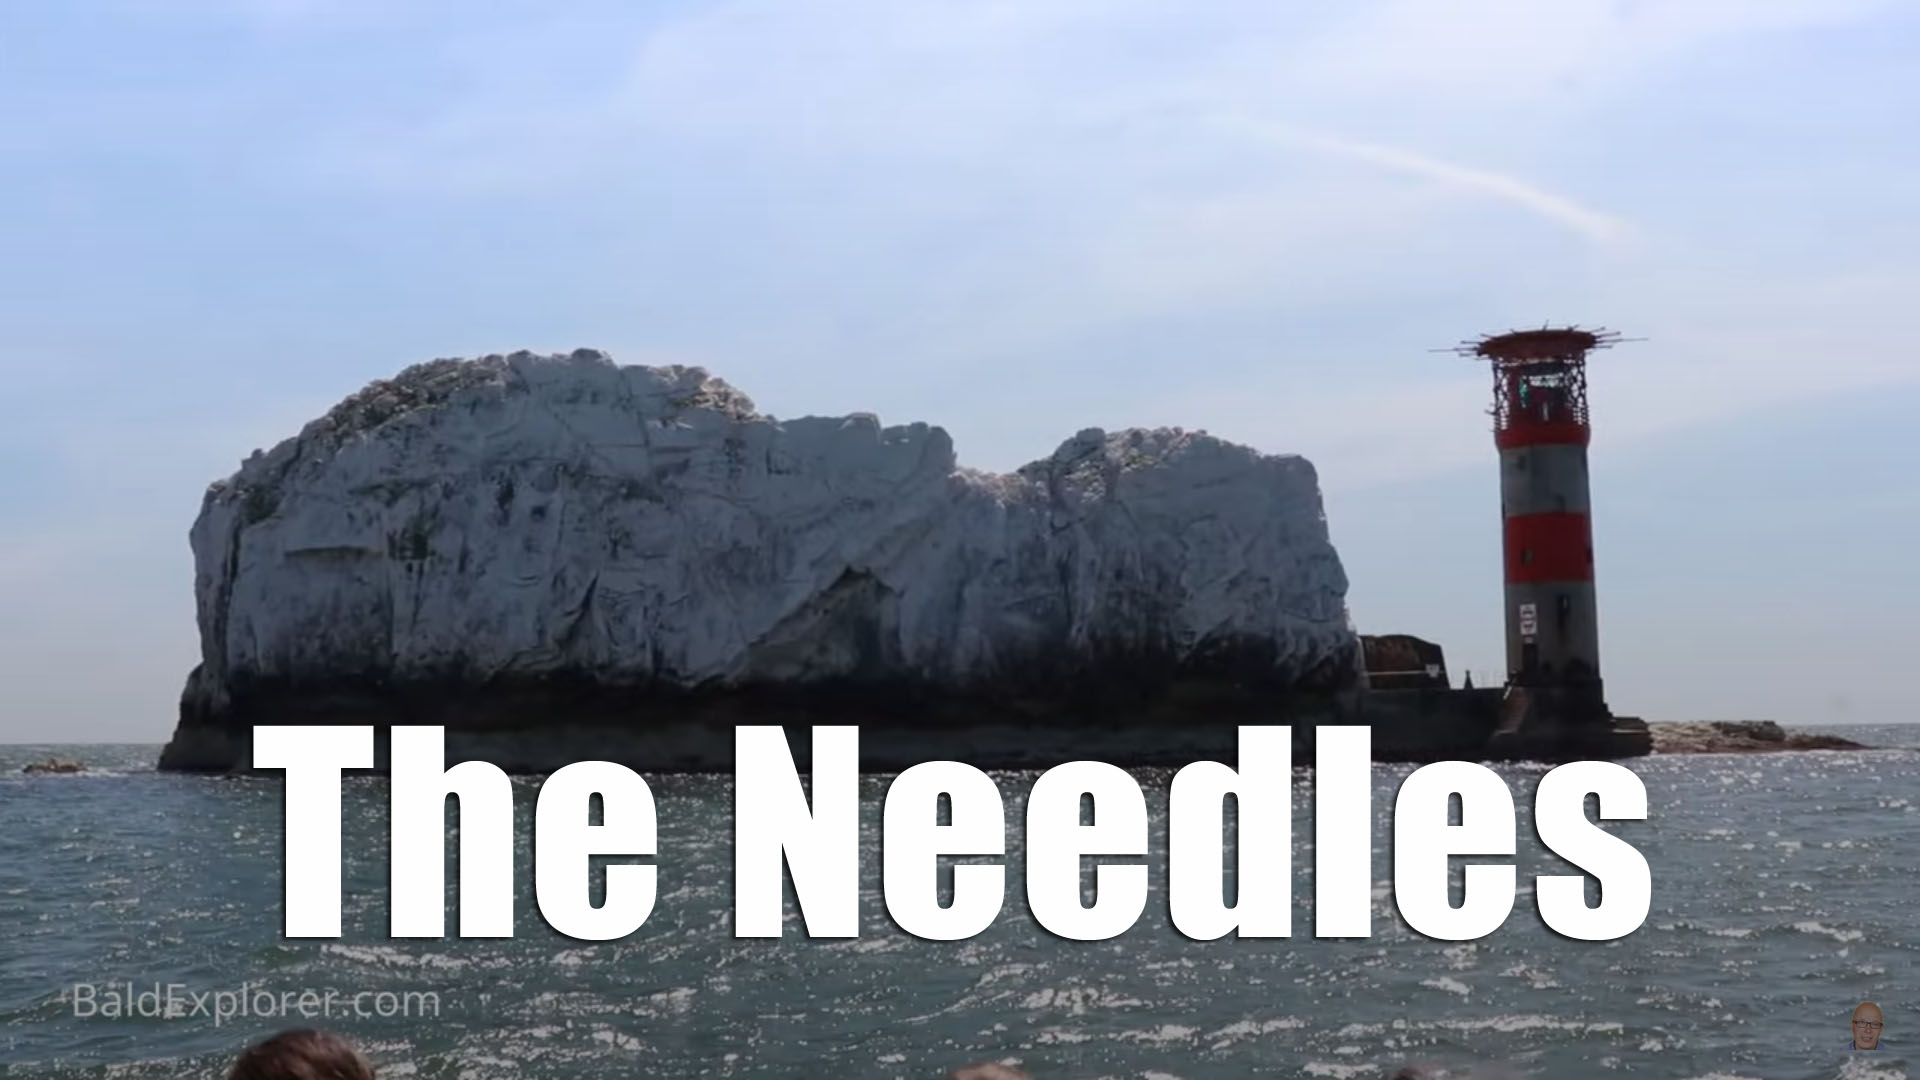 A Boat Trip Around The Needles - The Isle of Wight